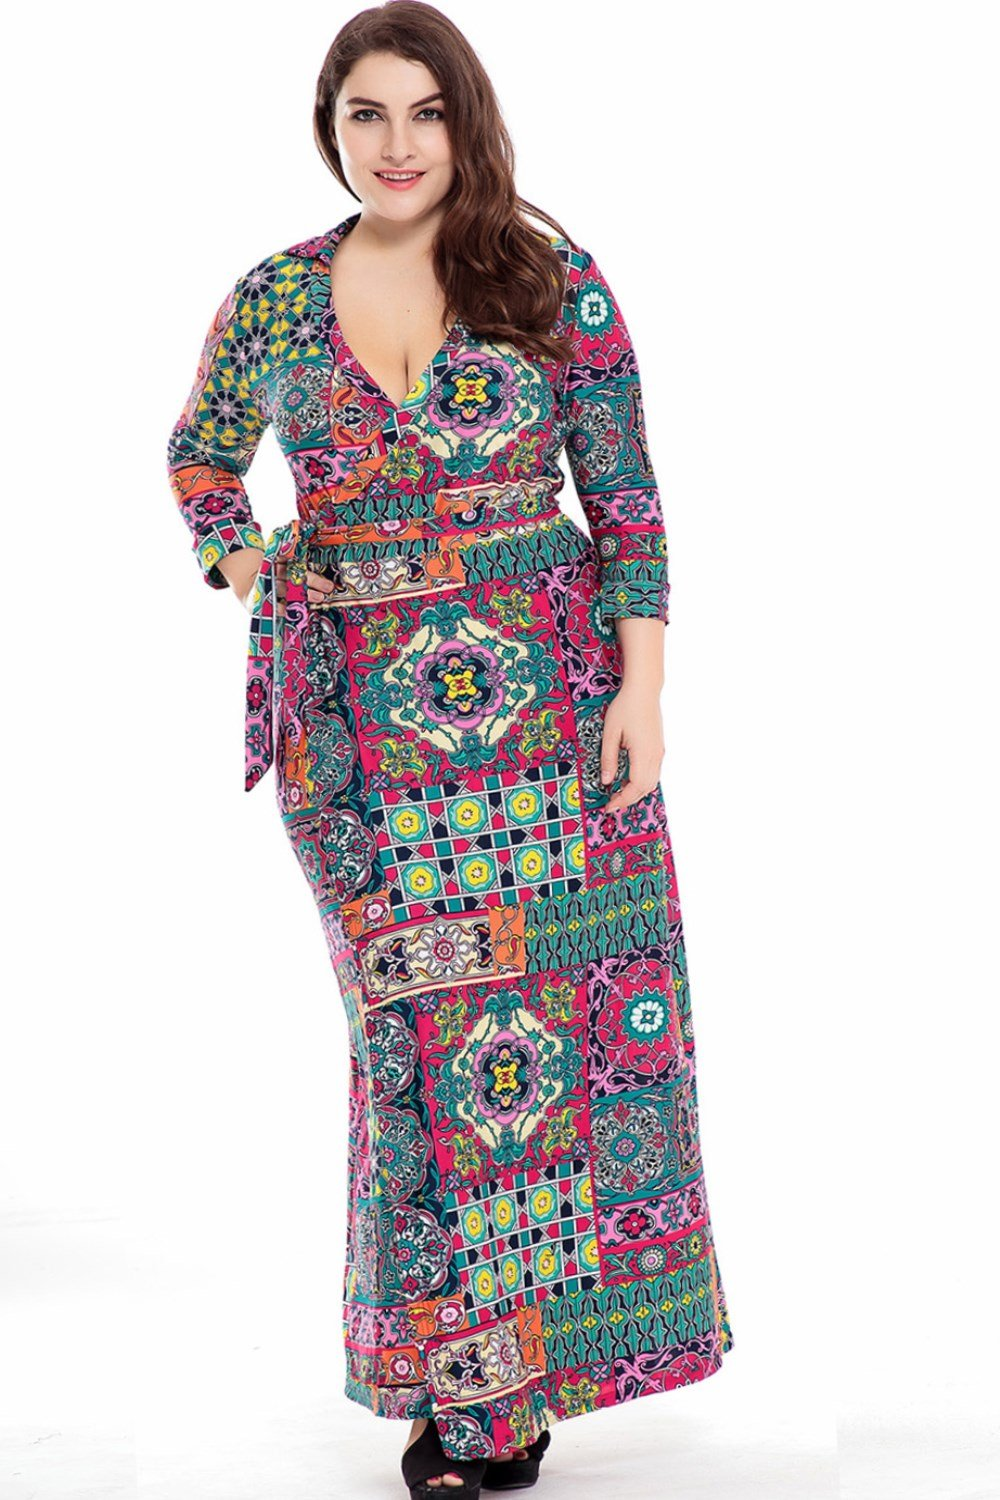 Plus Size Fall Maxi Dresses 2018 Pluslook Collection